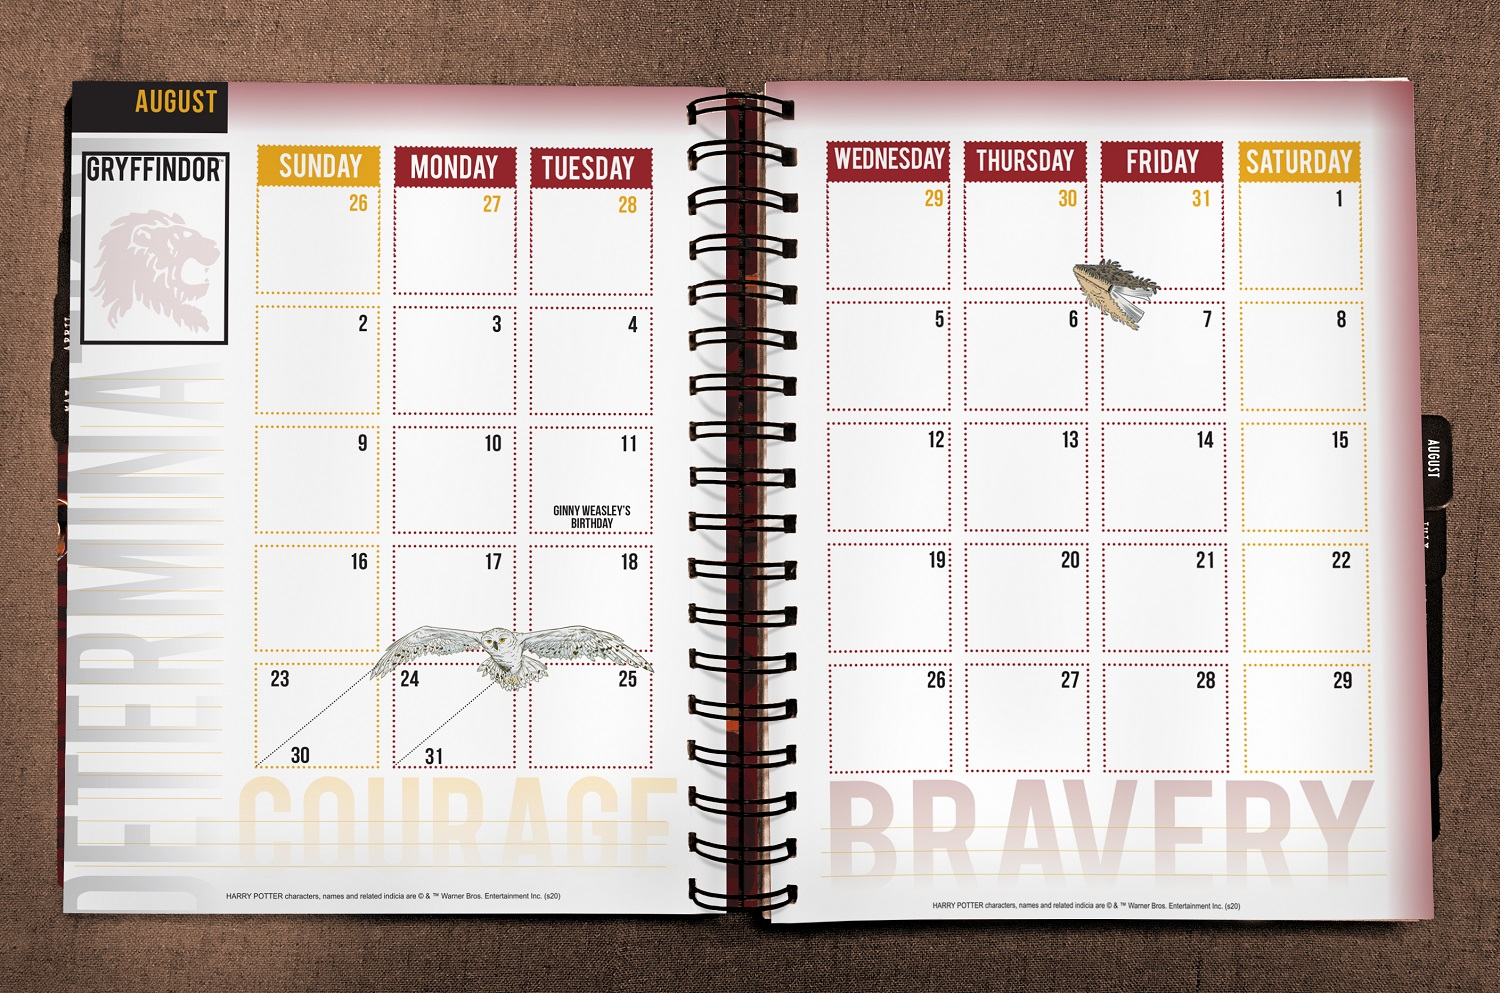 ConQuest Harry Potter Gryffindor 2020 inside monthly spread